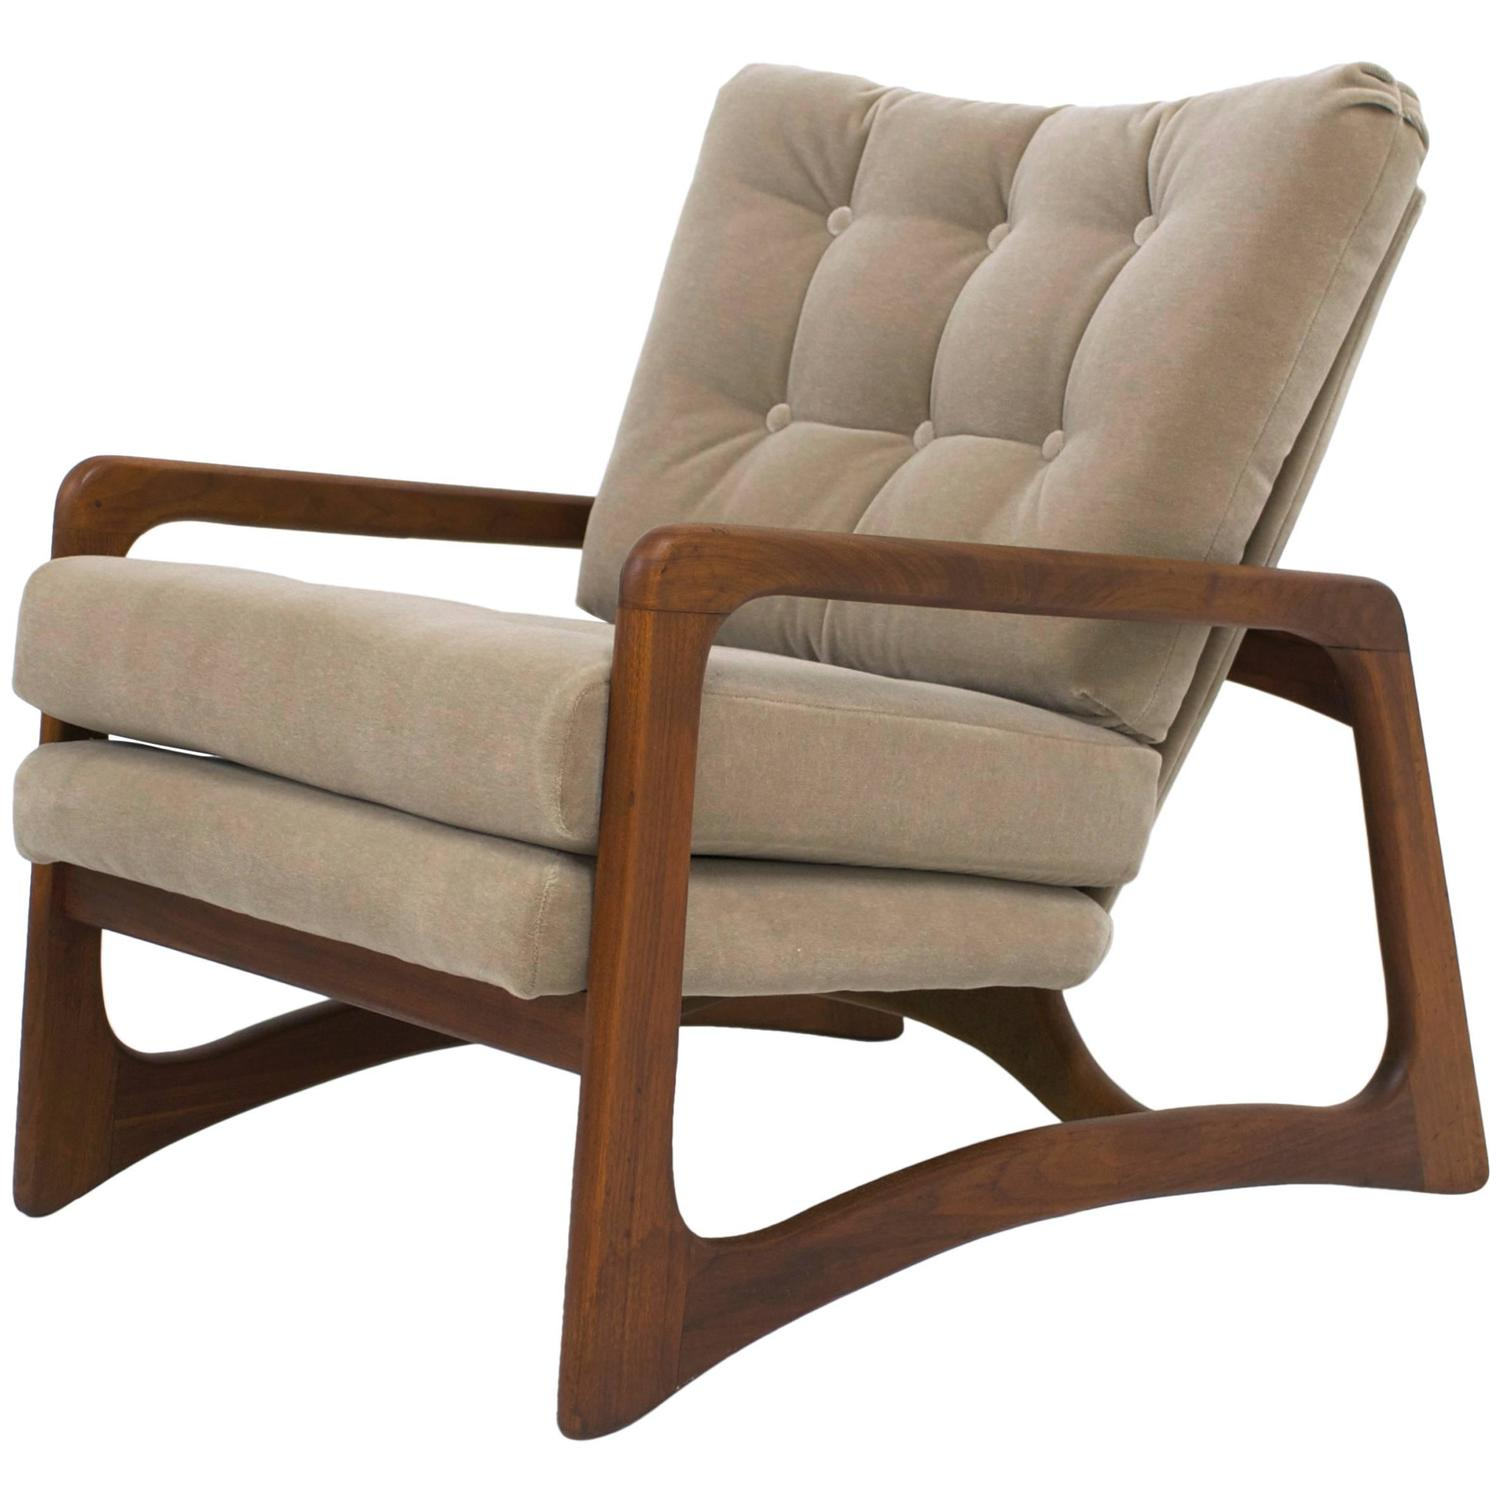 adrian pearsall chair motel chairs for sale sold walnut lounge in taupe mohair flow modern 4767353 z jpg